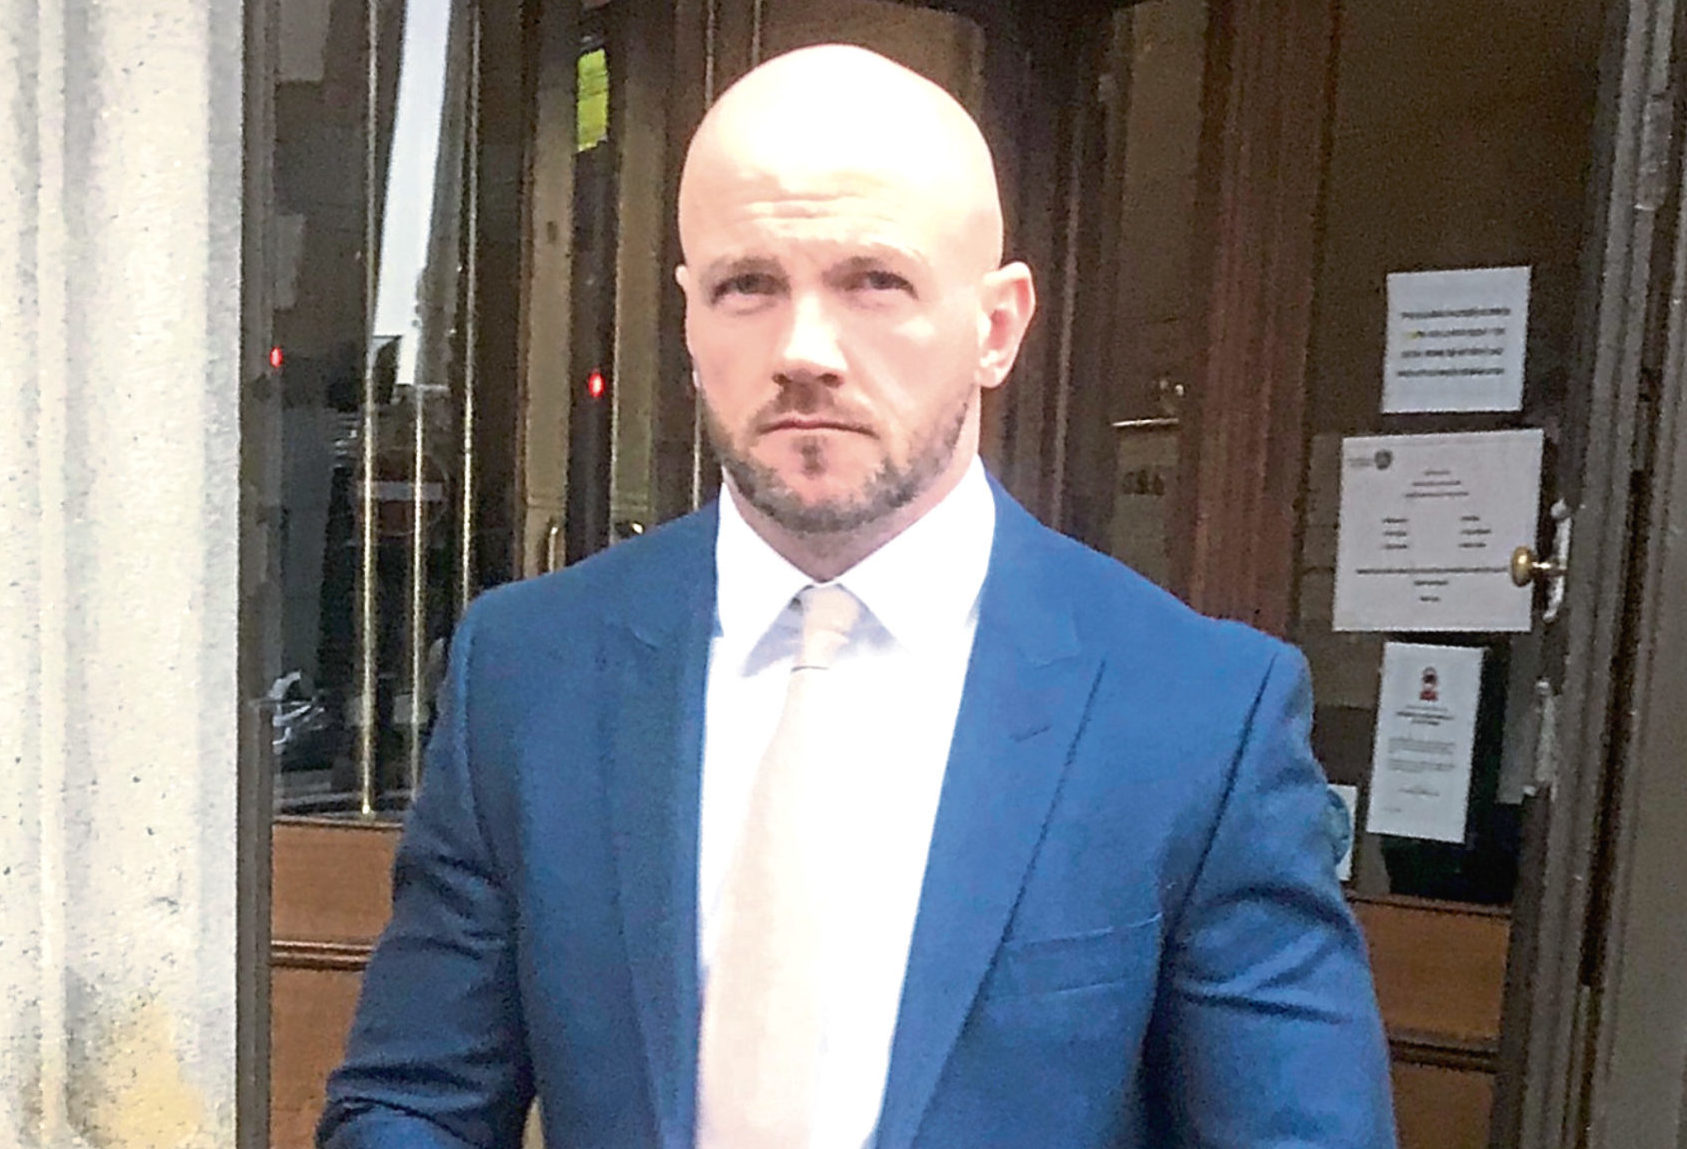 John McElory was at the Club Tropicana nightclub  when he attacked another man with a bottle